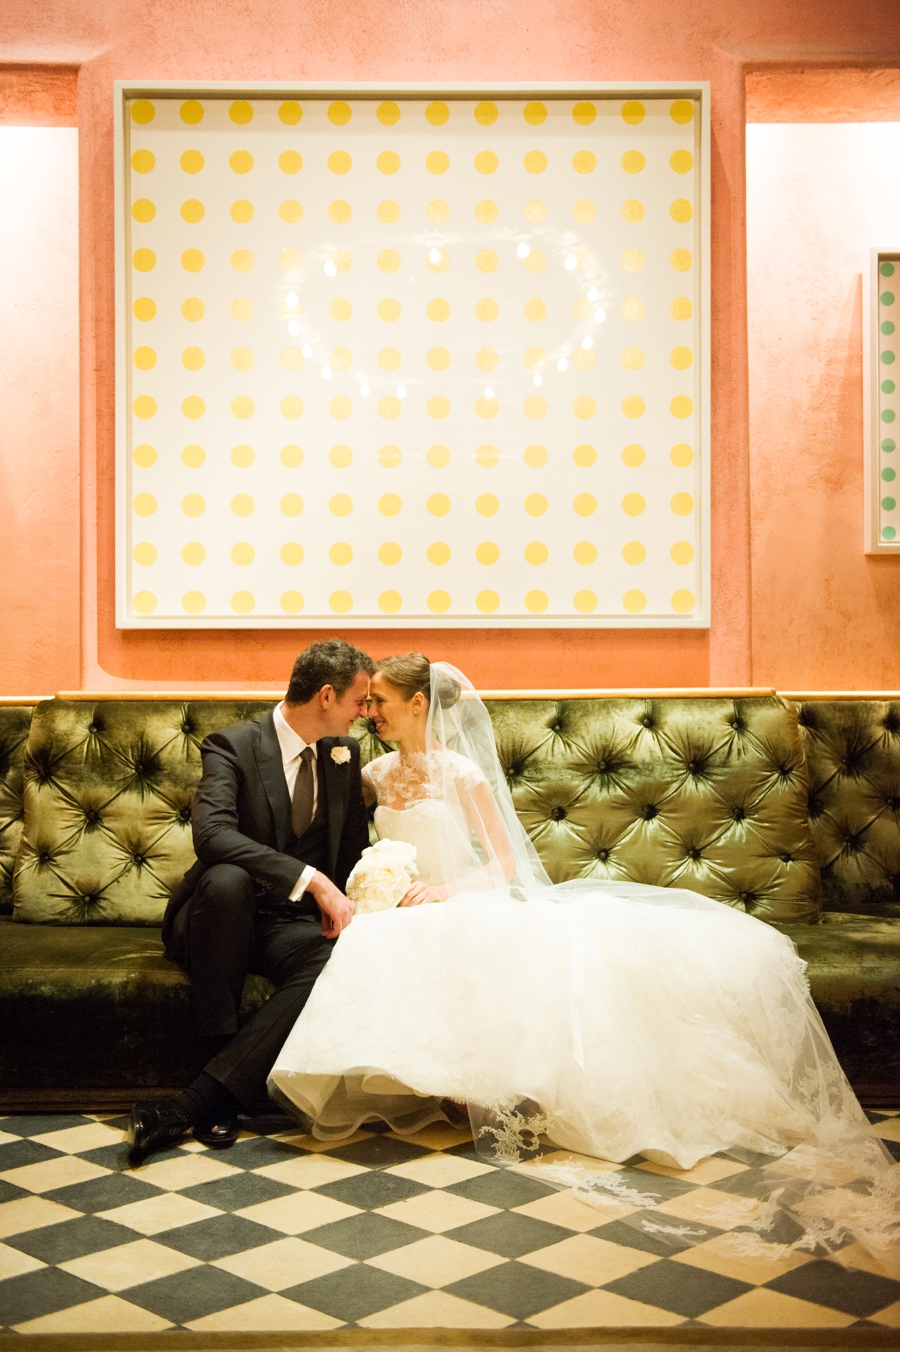 RKP_NEW_YORK_CITY_WEDDING_GRAMERCY_PARK_HOTEL_NL_0022.jpg